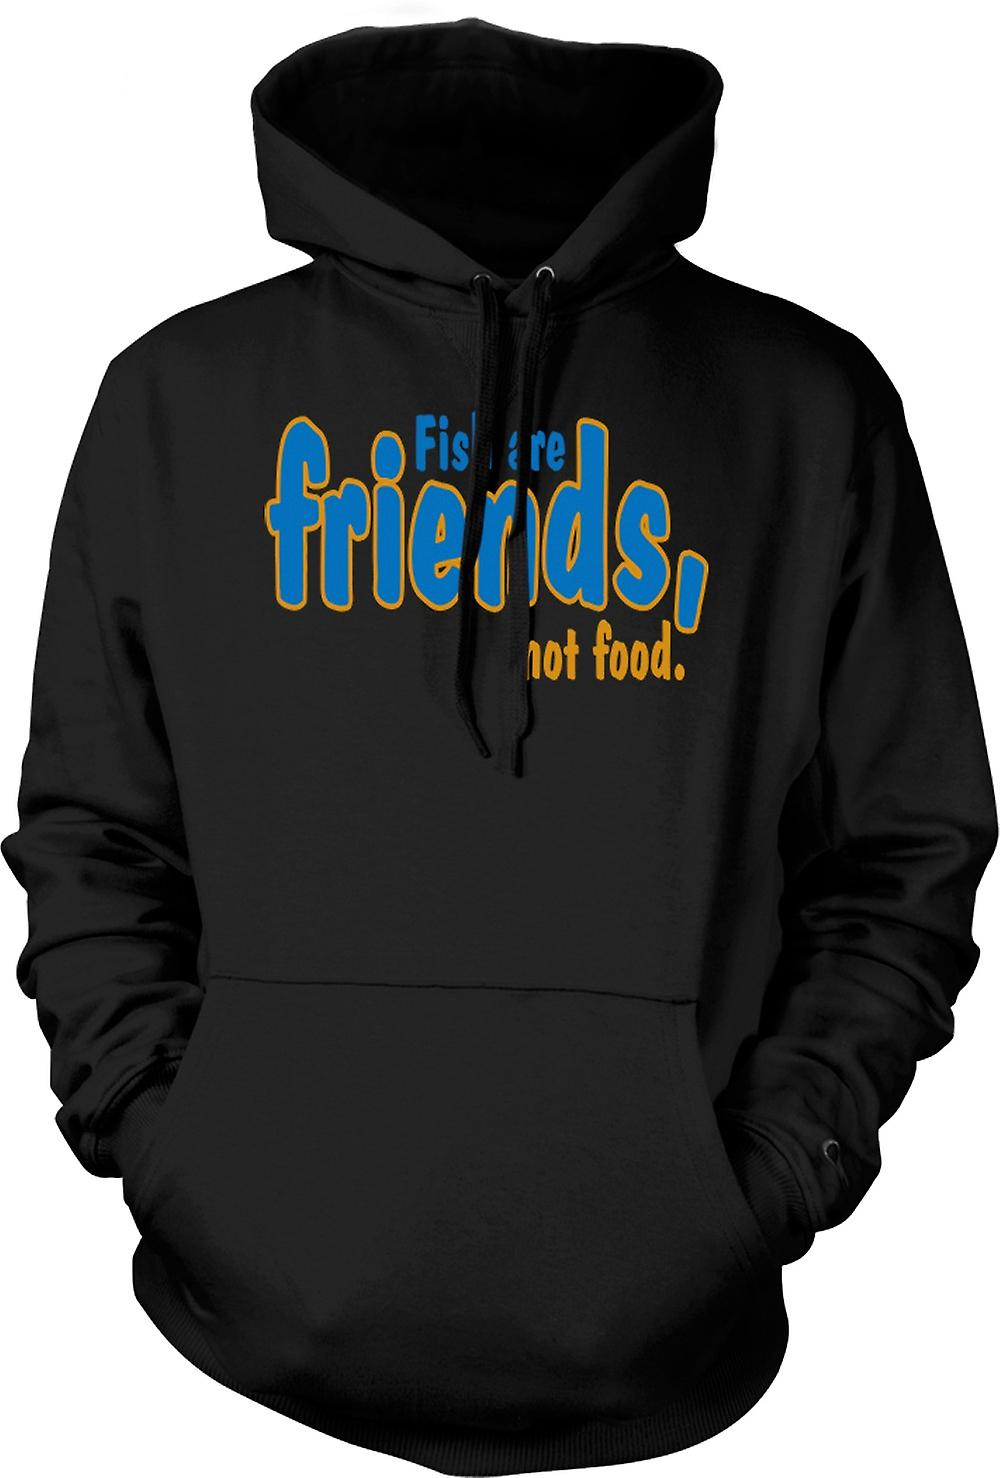 Kids Hoodie - Fish Are Friends, Not Food - Funny Quote